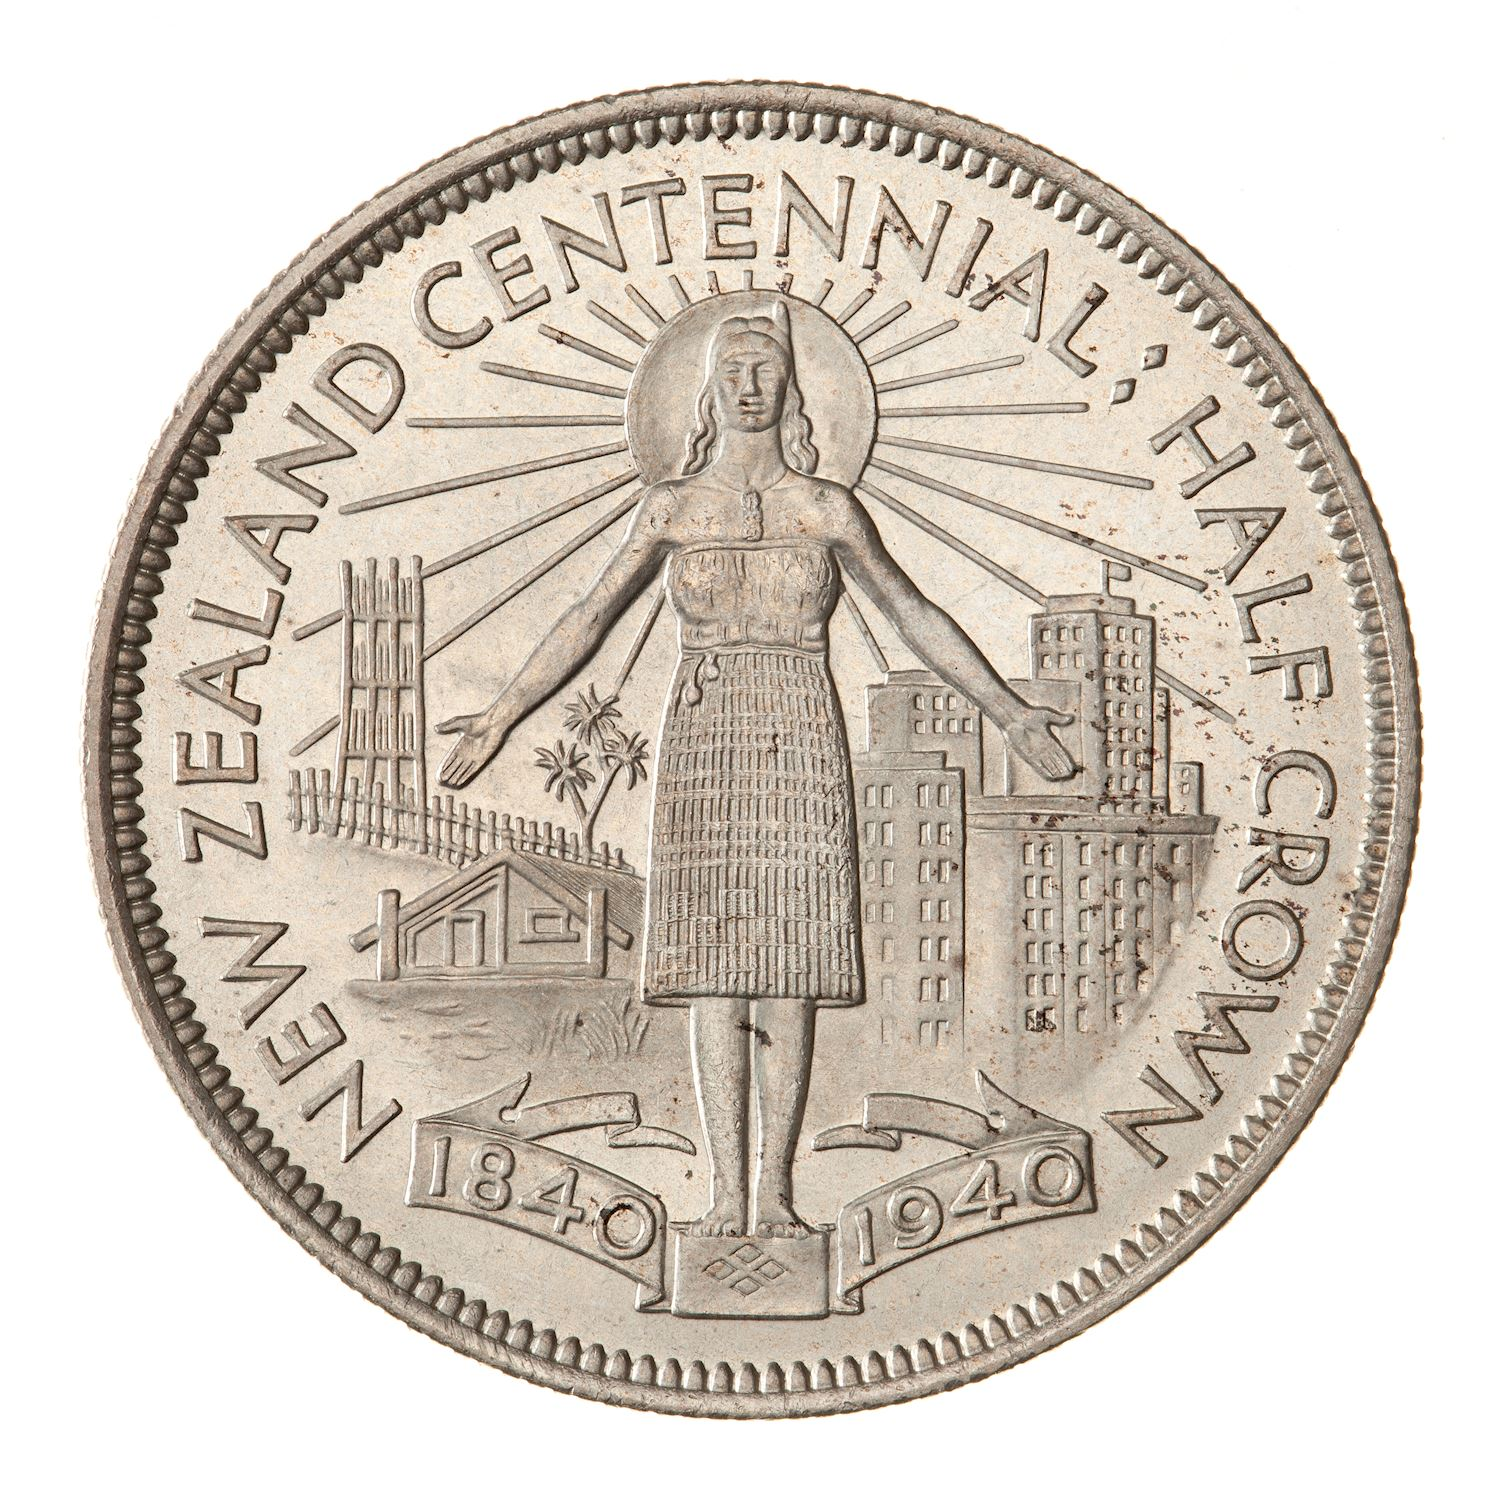 Half Crown: Photo Proof Coin - 1/2 Crown, New Zealand, 1940